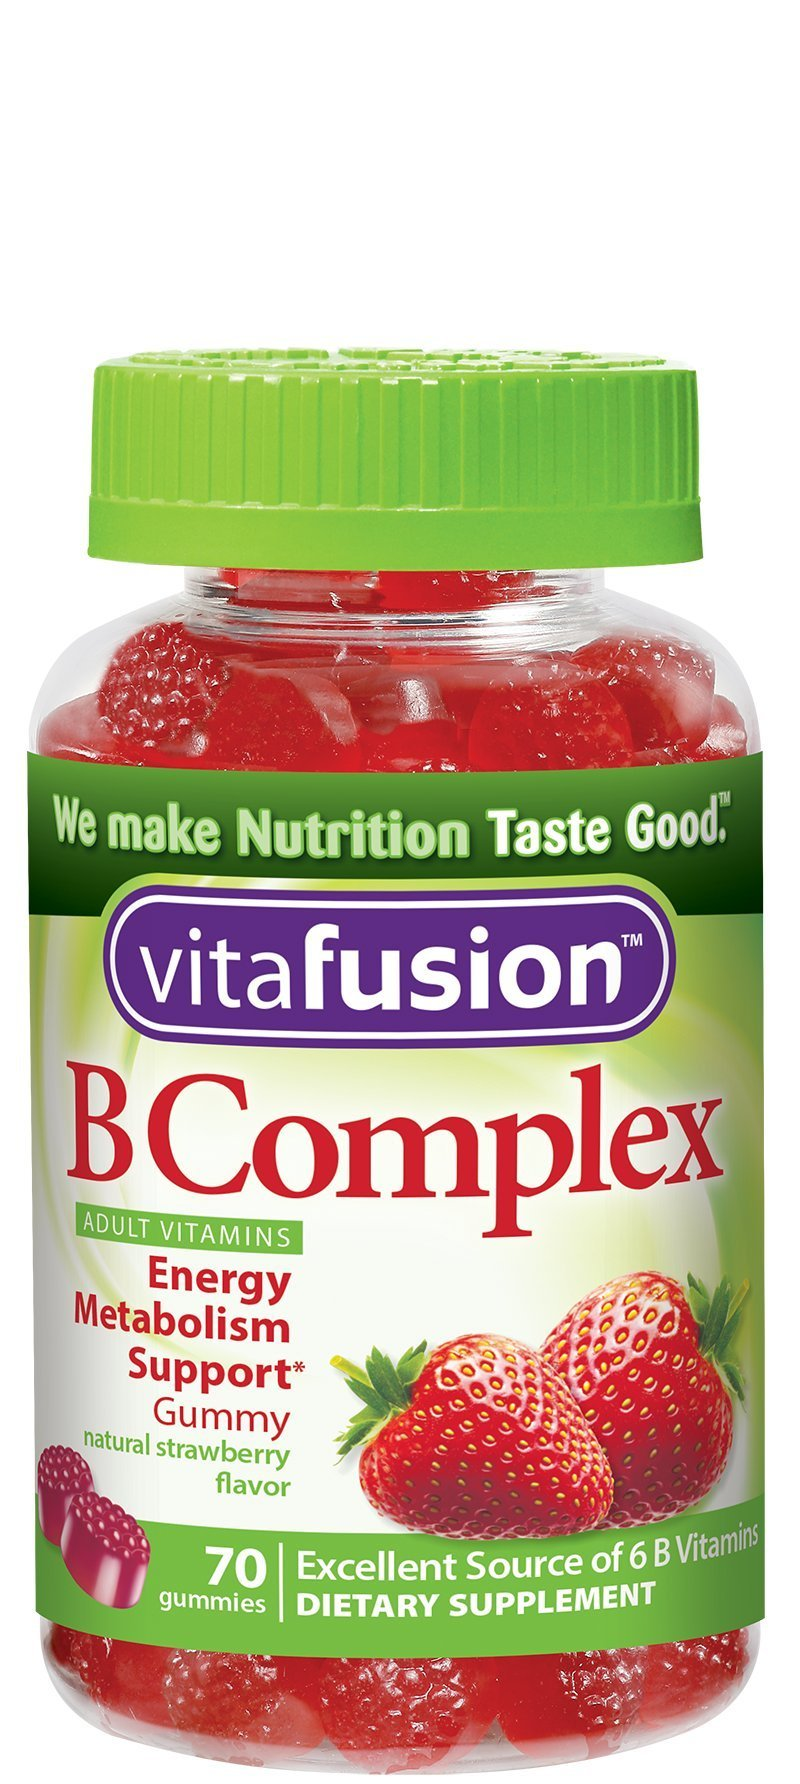 Vitafusion B Complex Gummy Vitamins, 70 Count, Pack of 3 (Packaging May Vary)